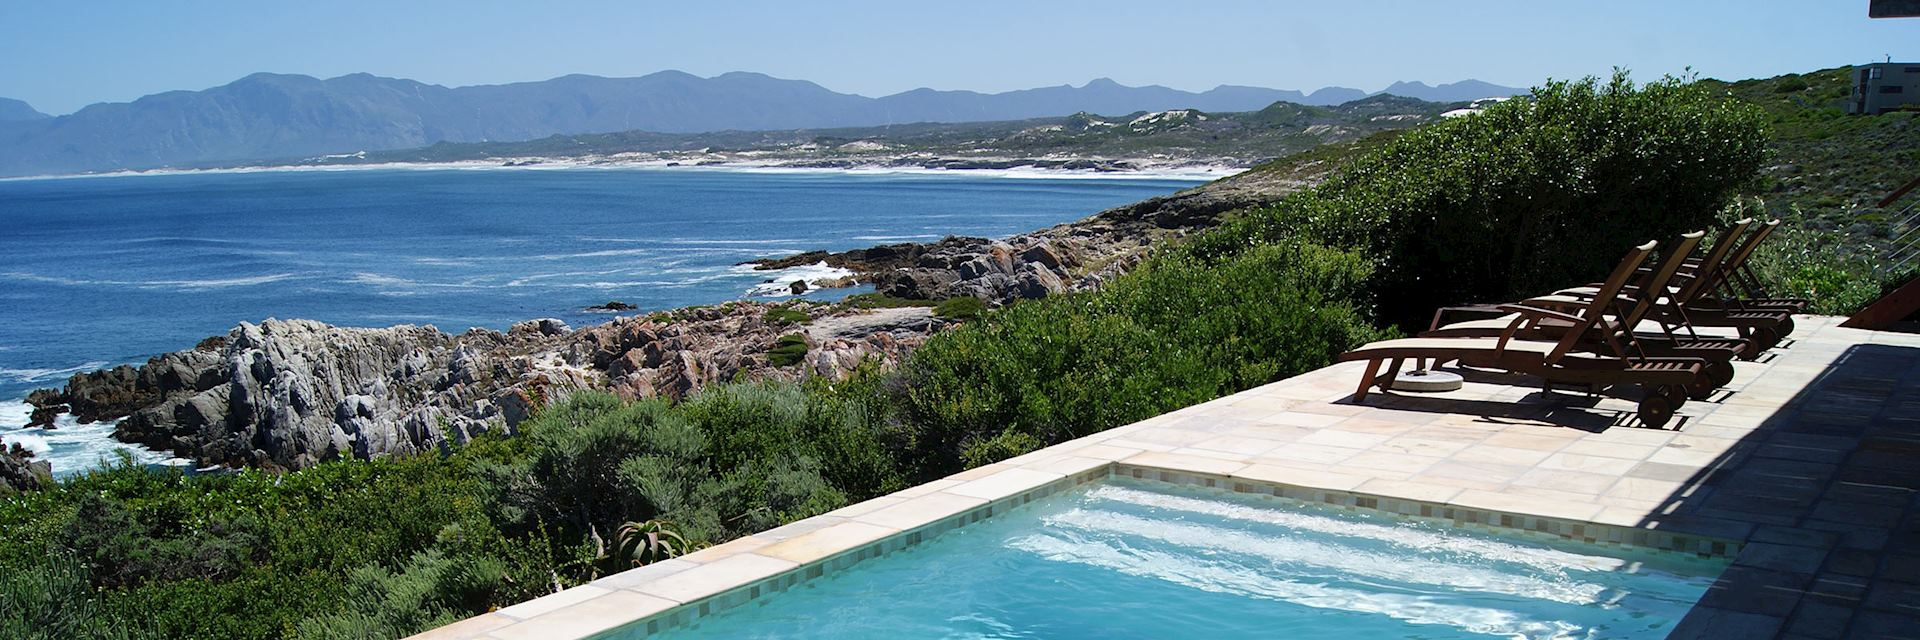 Hermanus Whale Watching - View from Cliff Lodge De Kelders